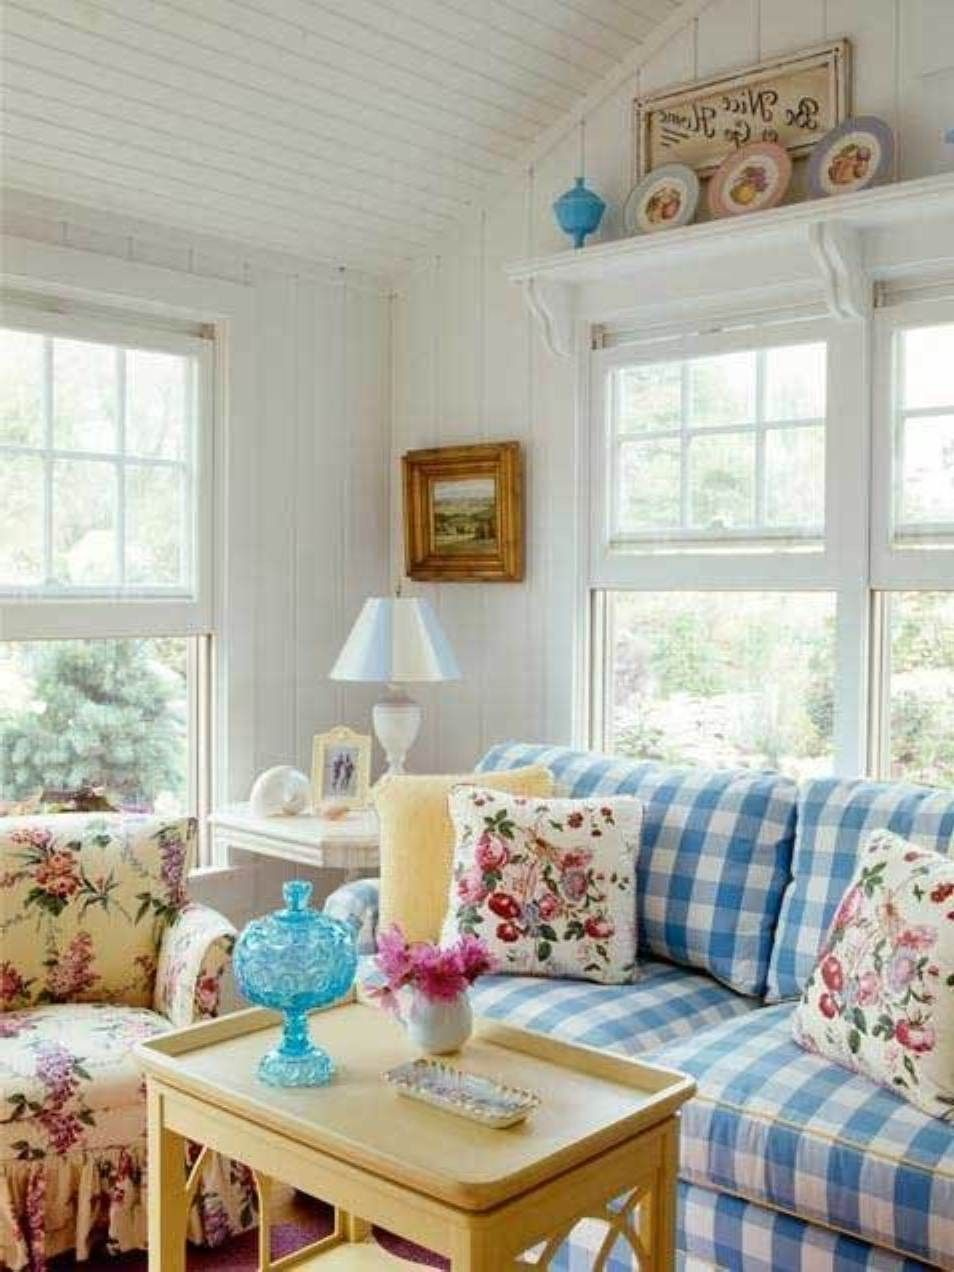 14 Unexpected Ways To Upgrade Your Living Room In 2020: Cottage Decor Living Room, Country Style Living Room, Cute